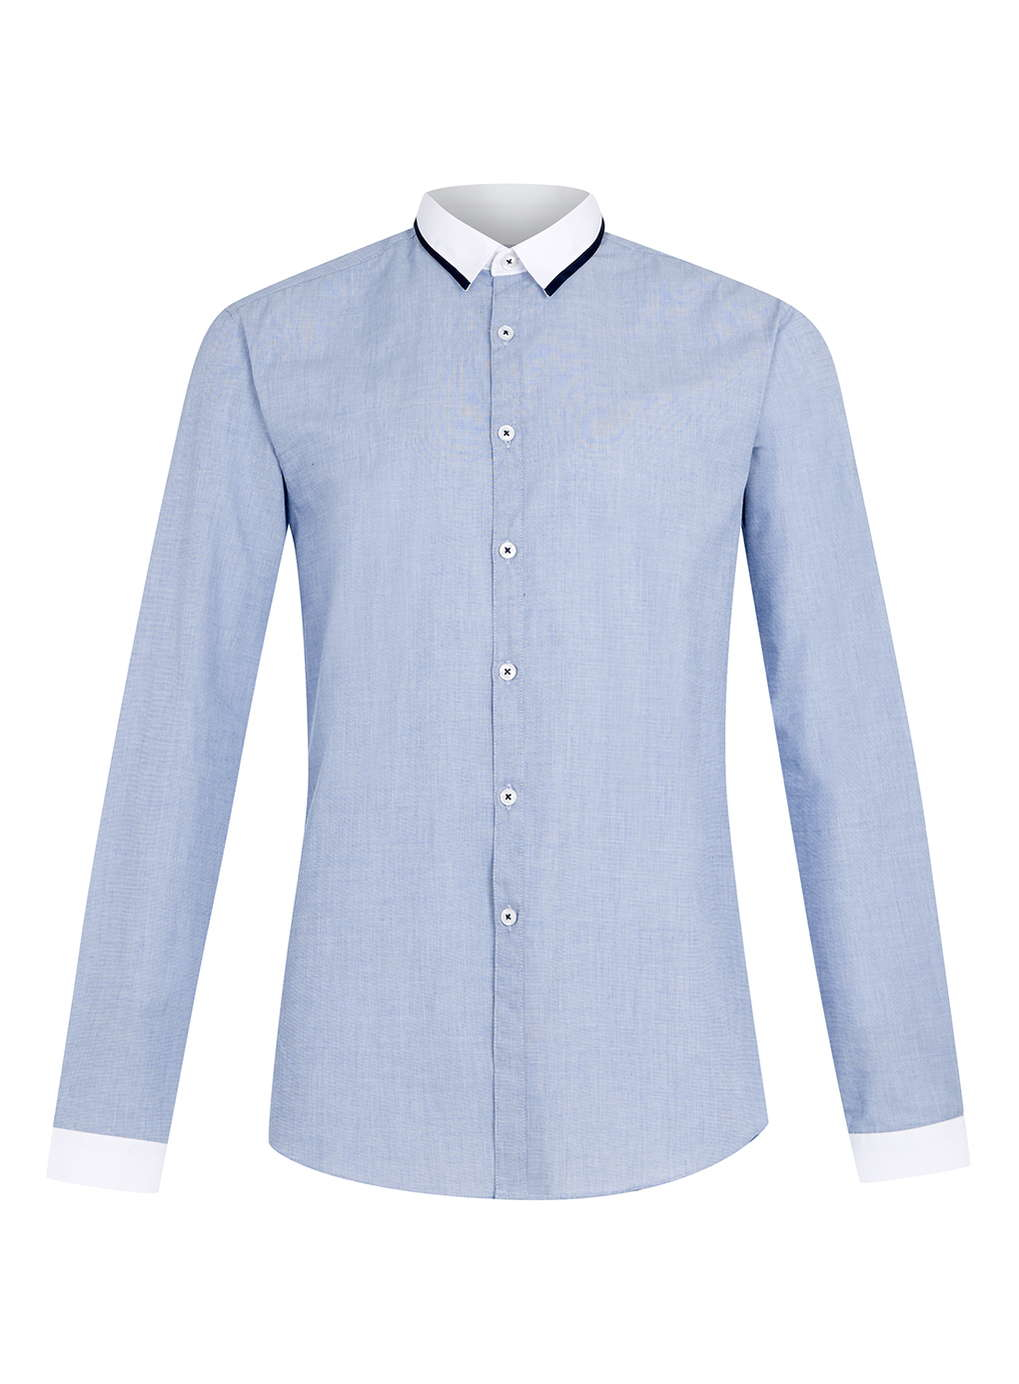 topman contrast collar long sleeve dress shirt in blue for